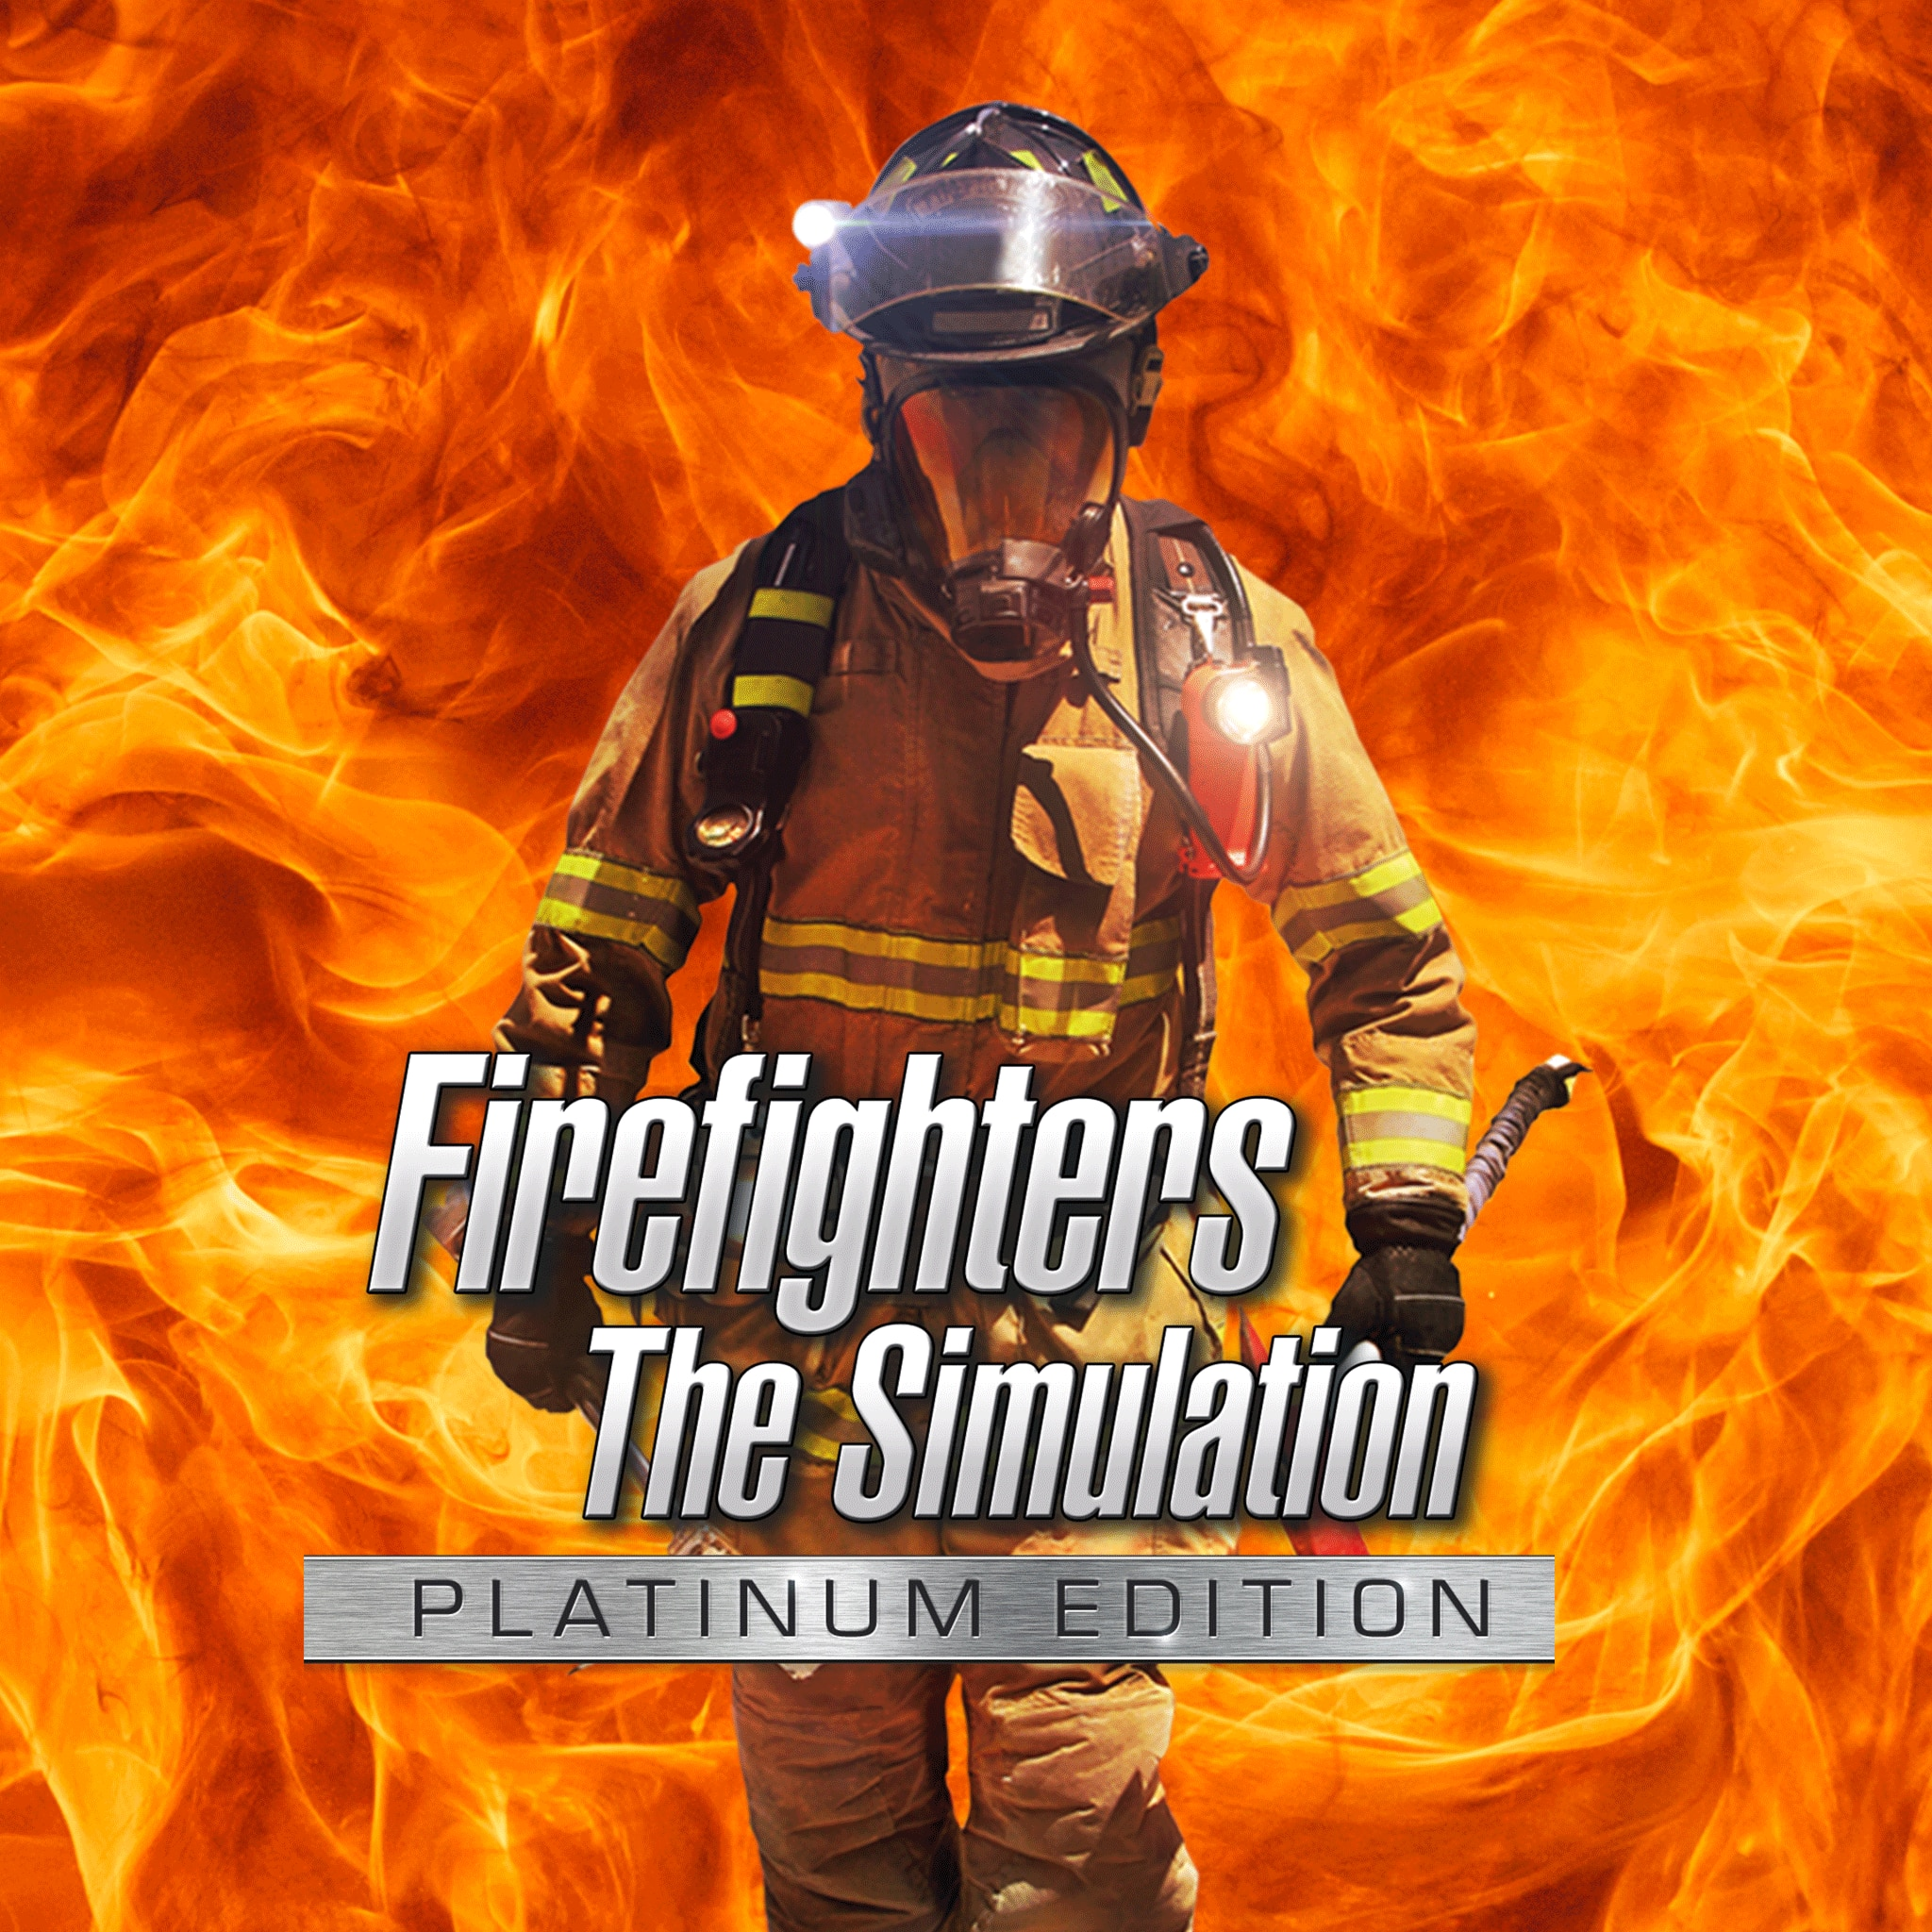 Firefighters - The Simulation Platinum Bundle